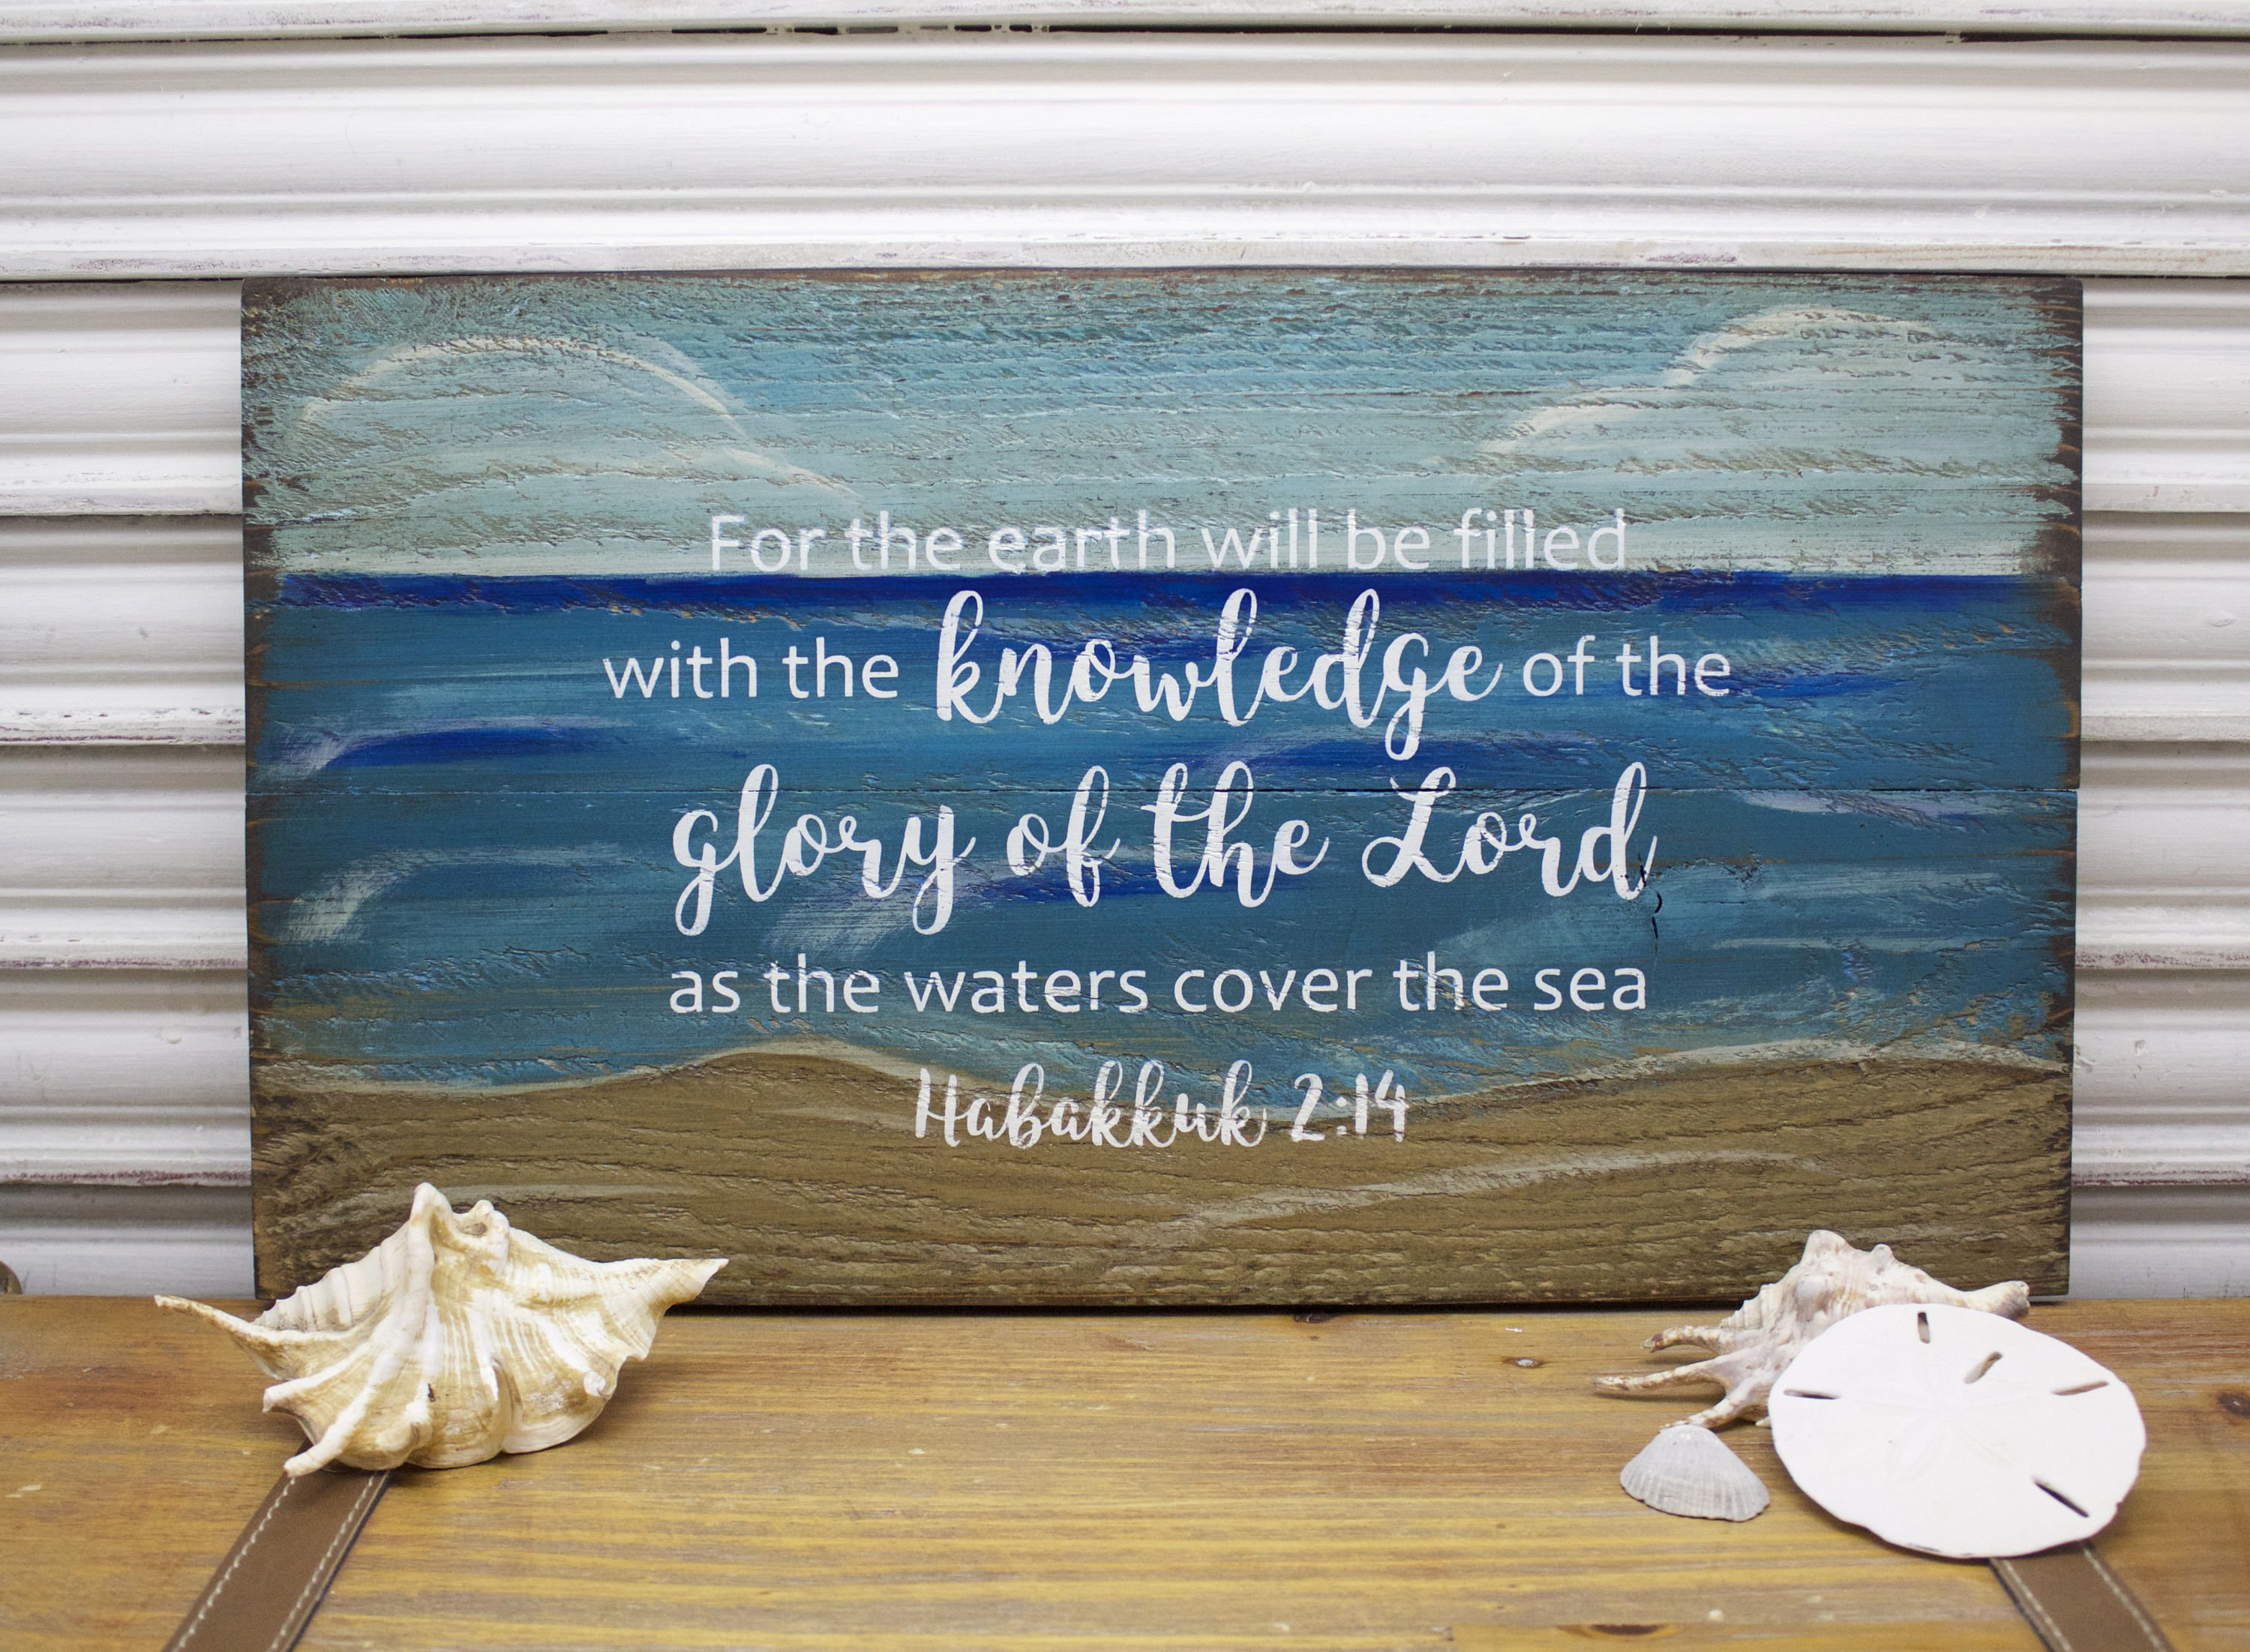 Scripture Wall Art Bible Verse Wall Art Beach Sign Wood Sign Wooden Sign Rustic Distressed Beach Decor Christ Beach Decor Scripture Wall Art Beach Signs